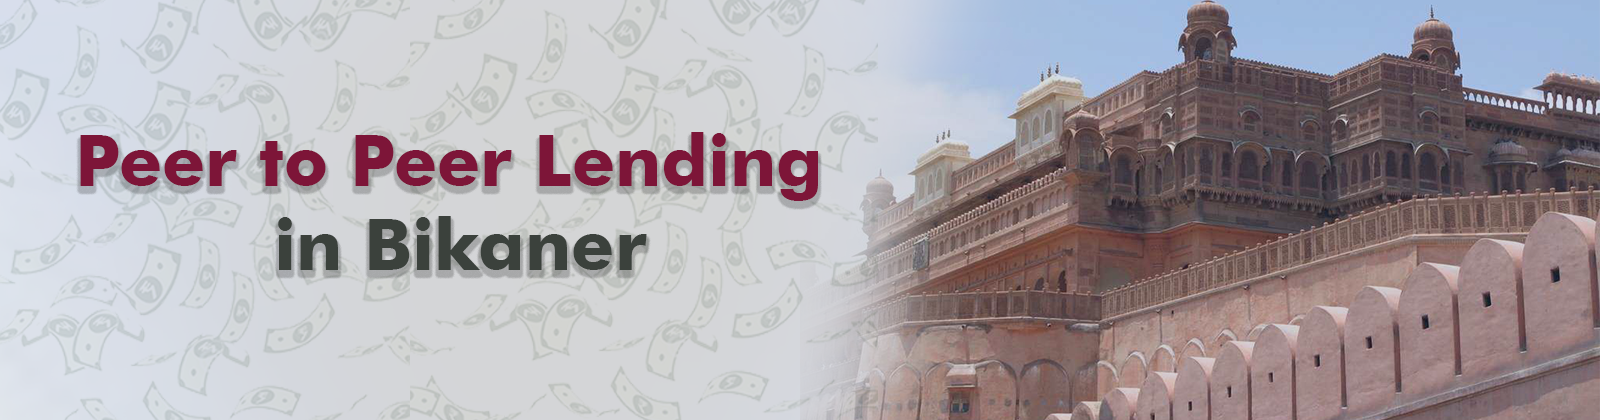 Peer to Peer Lending in Bikaner